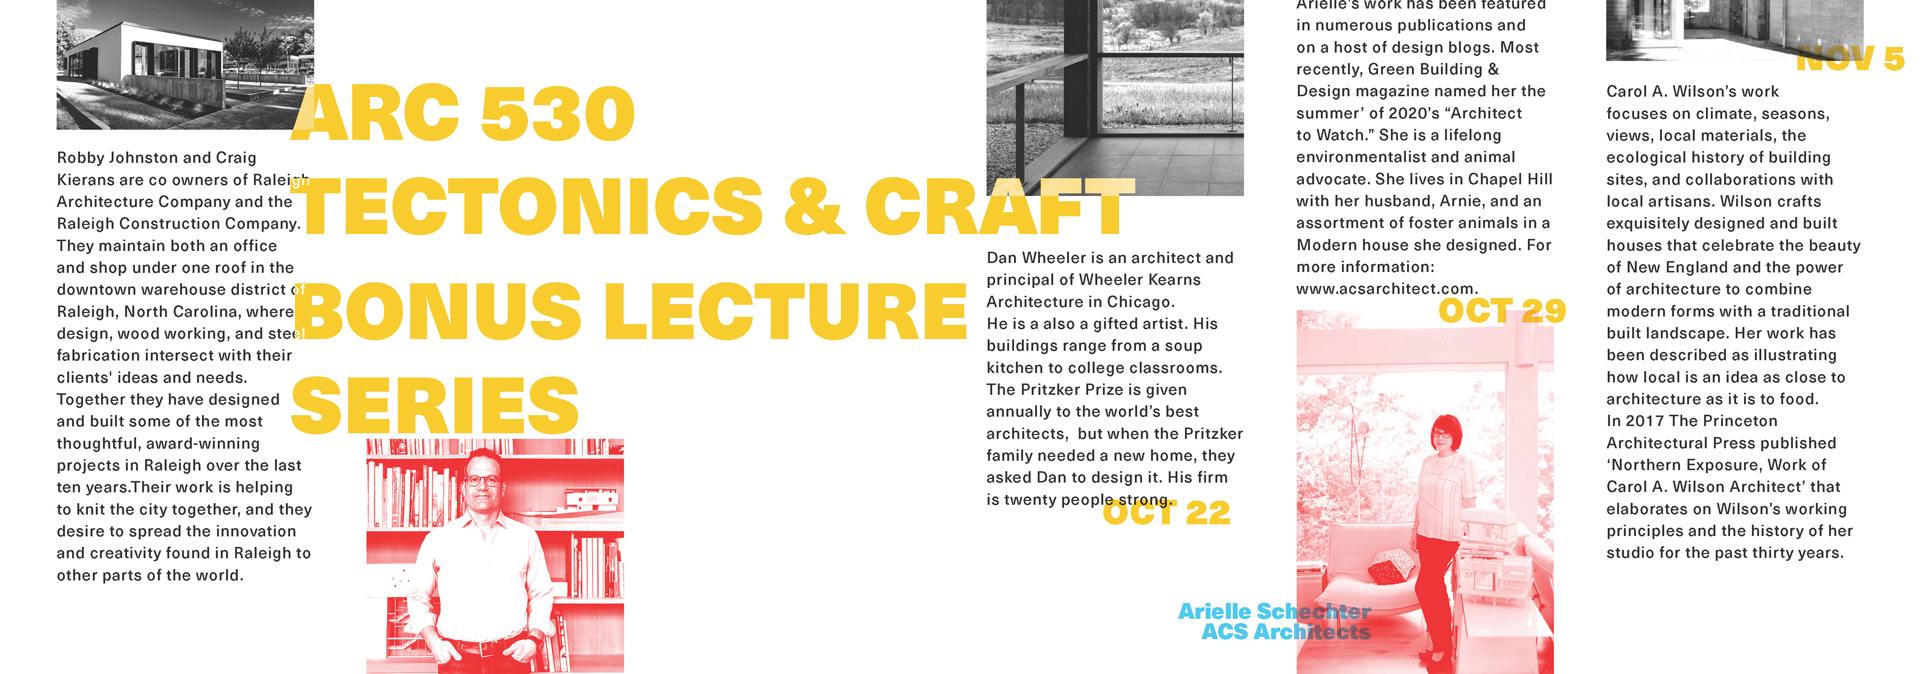 ARC 530 Tectonics and Craft Lecture Series